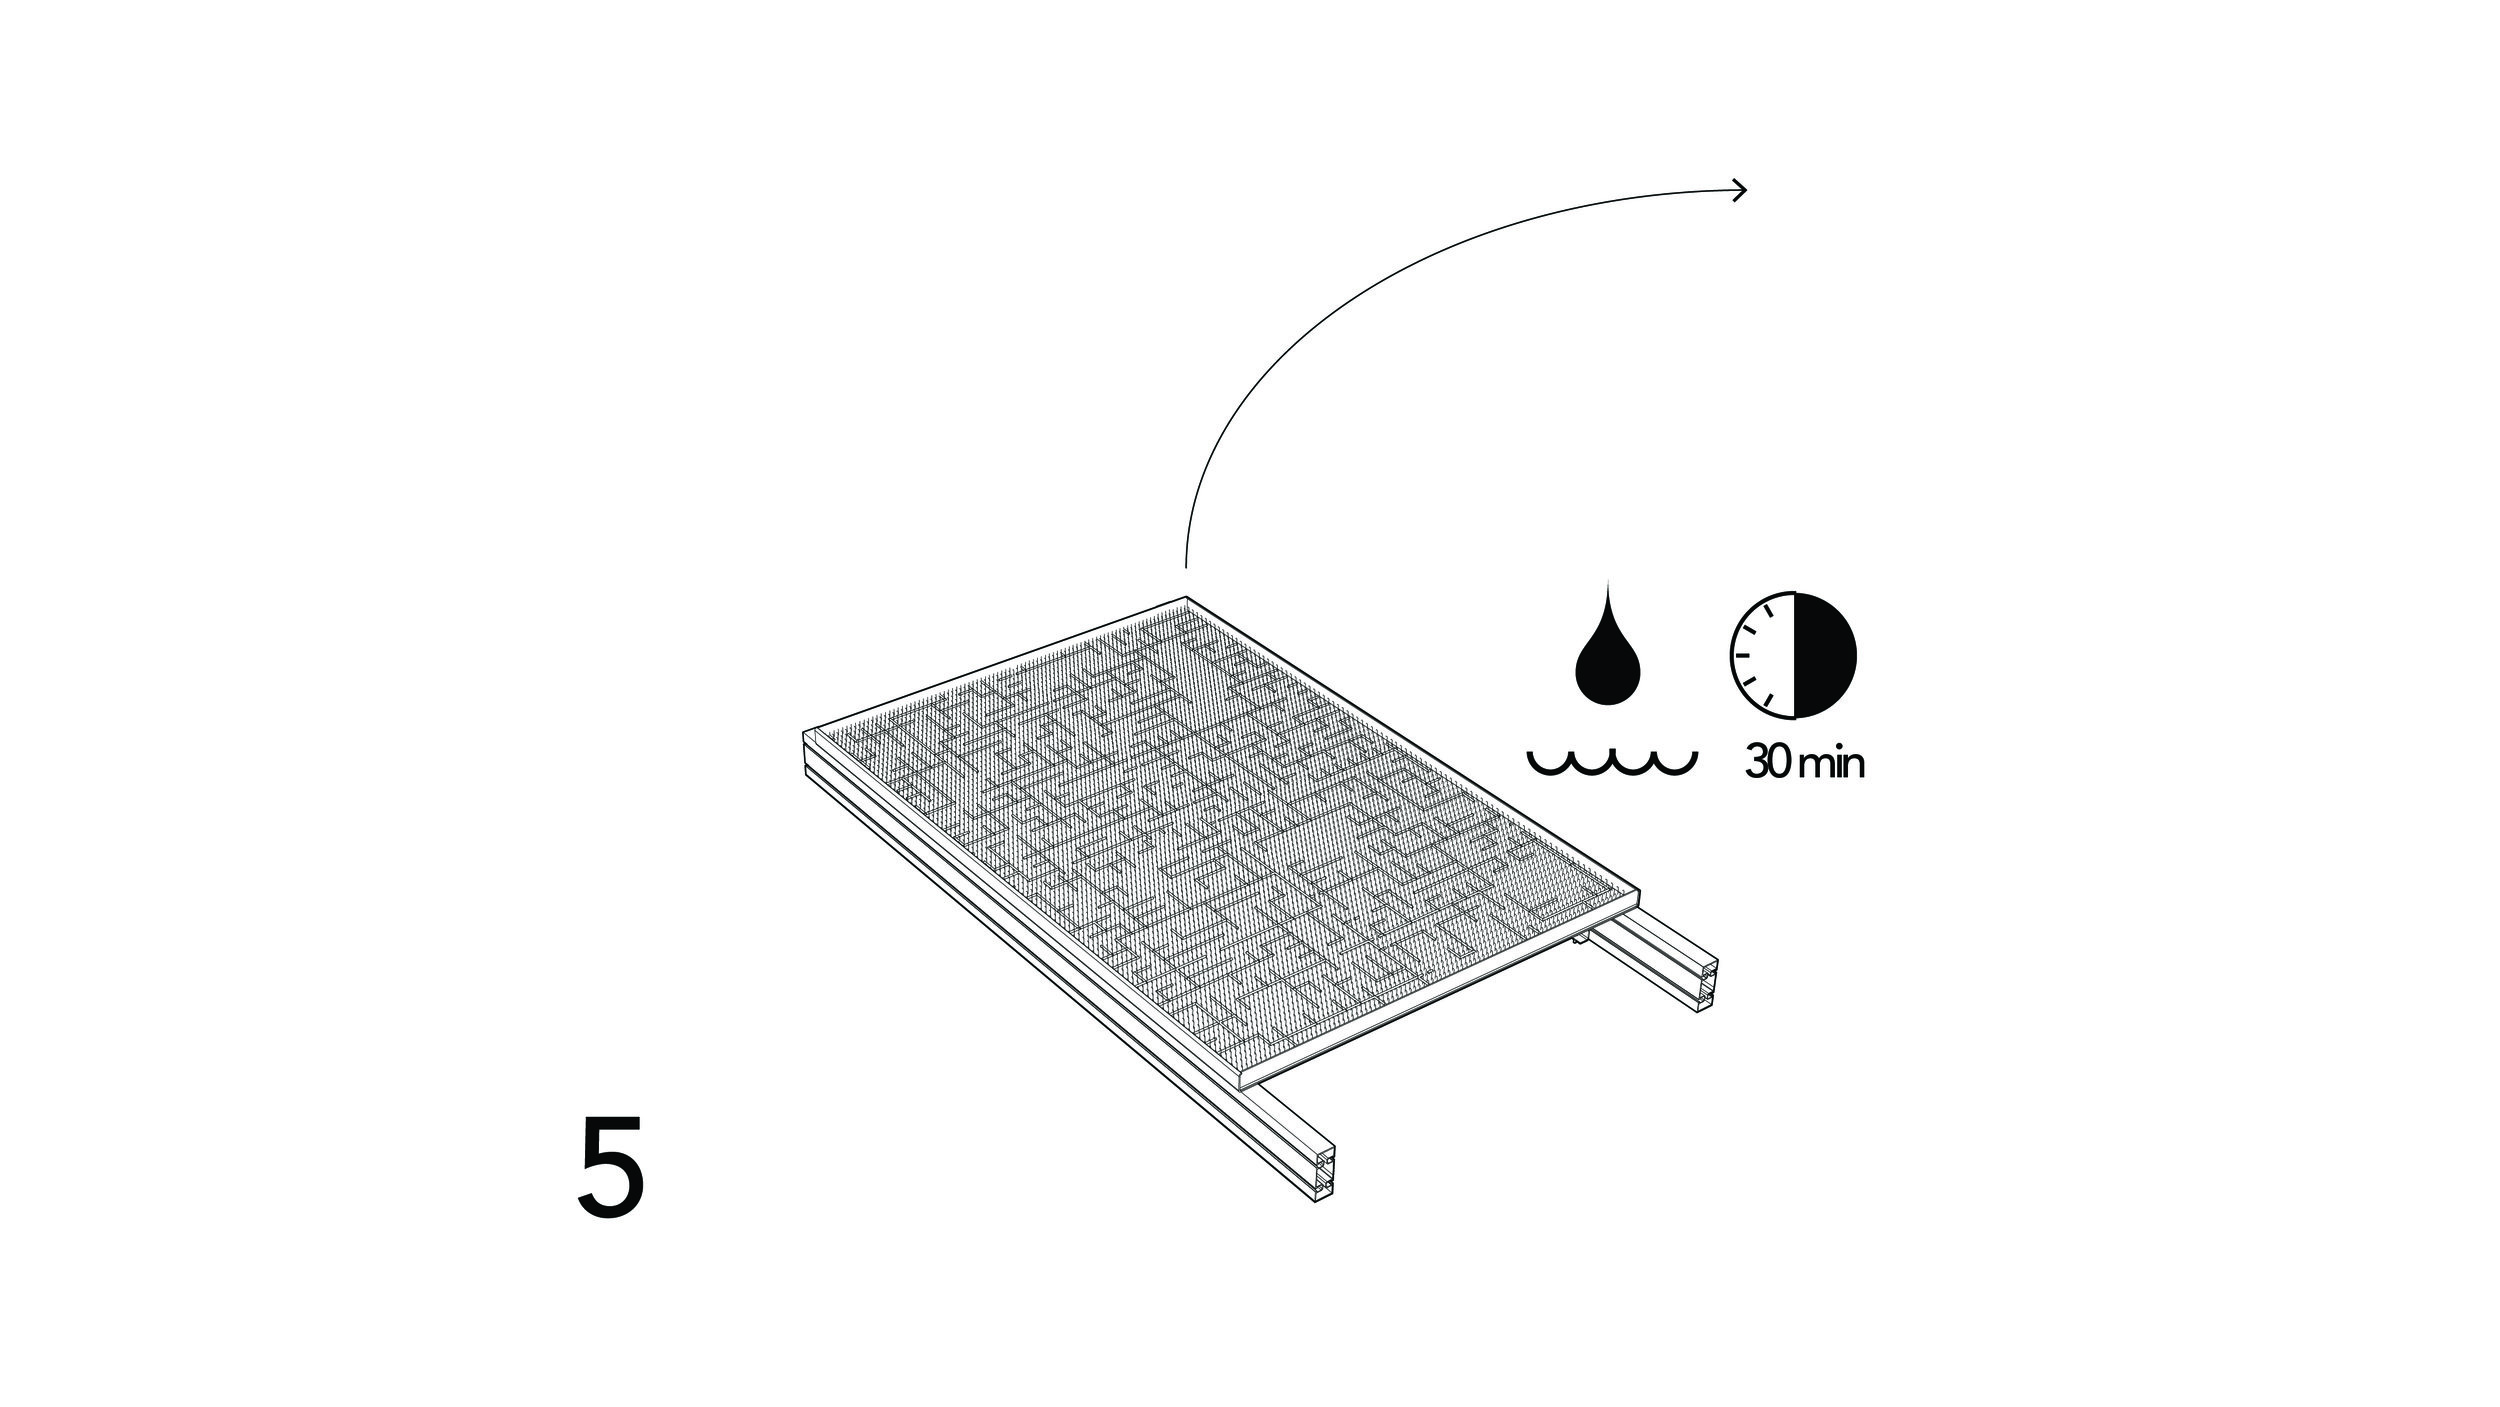 Ikea instructions-05.jpg